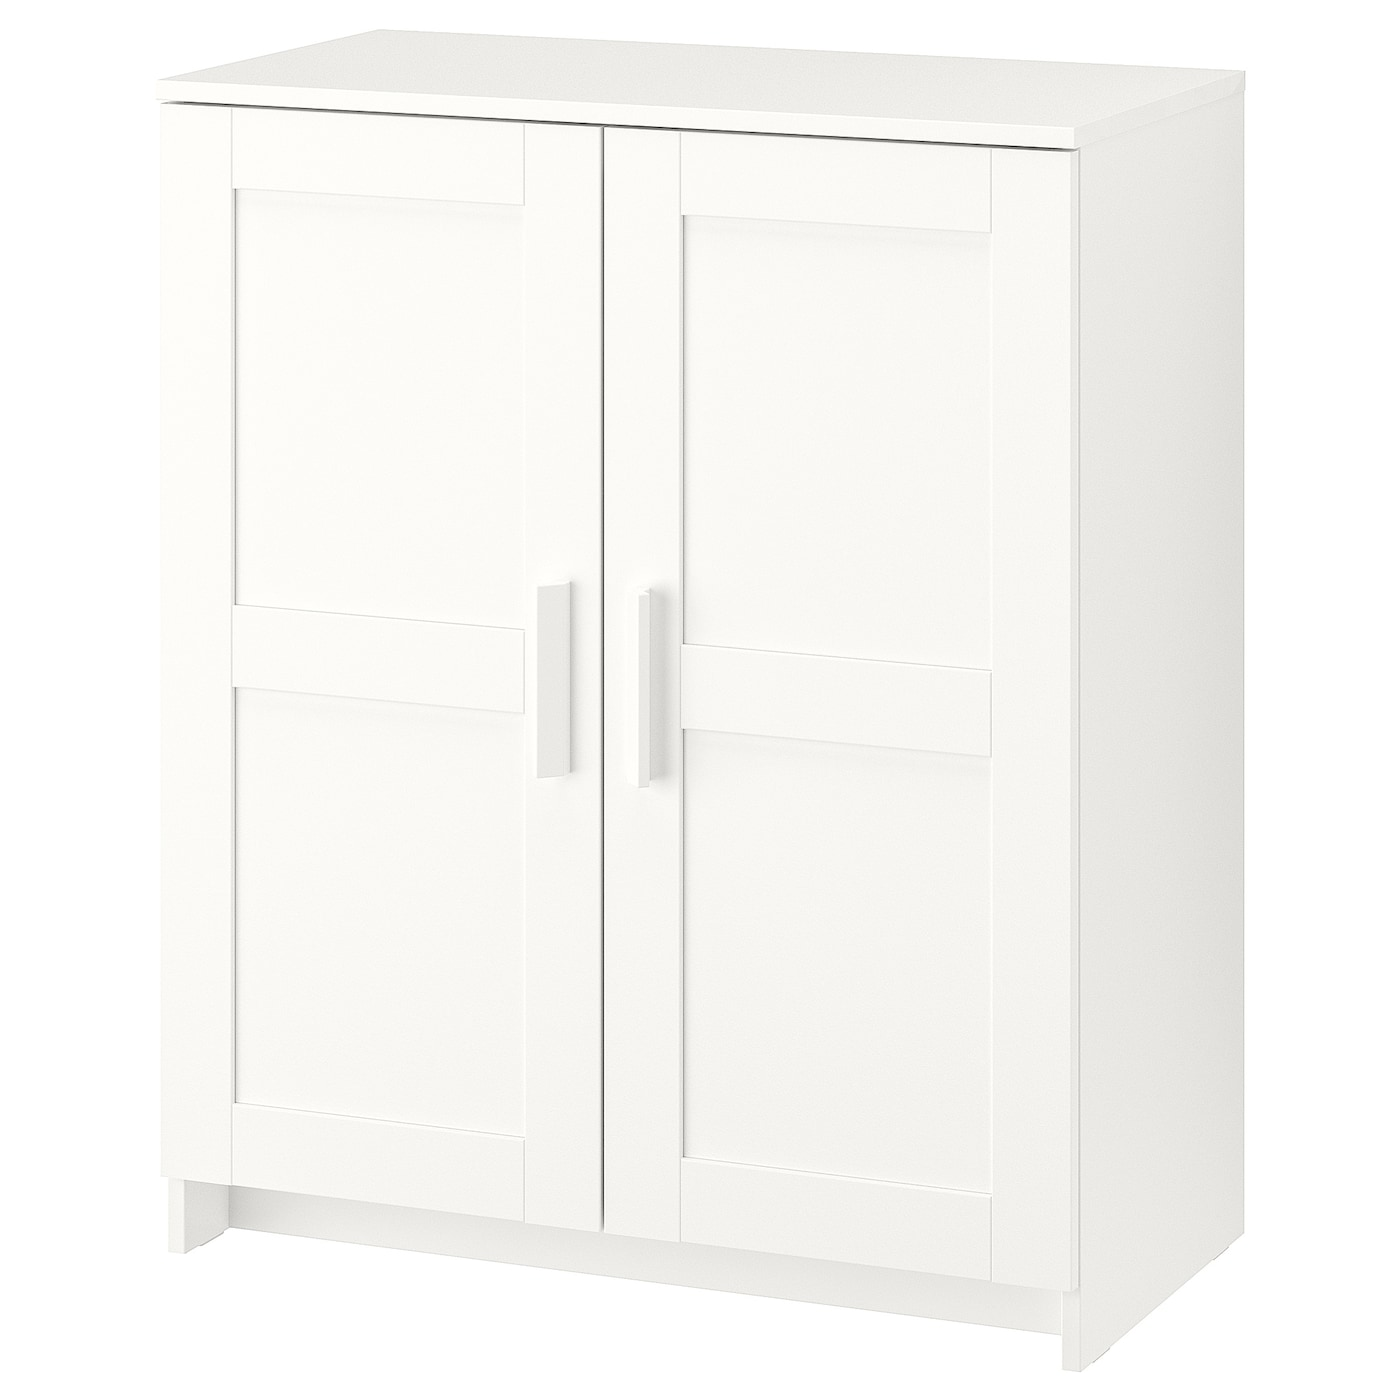 Ikea brimnes cabinet with doors adjustable shelves so you can customise your storage as needed